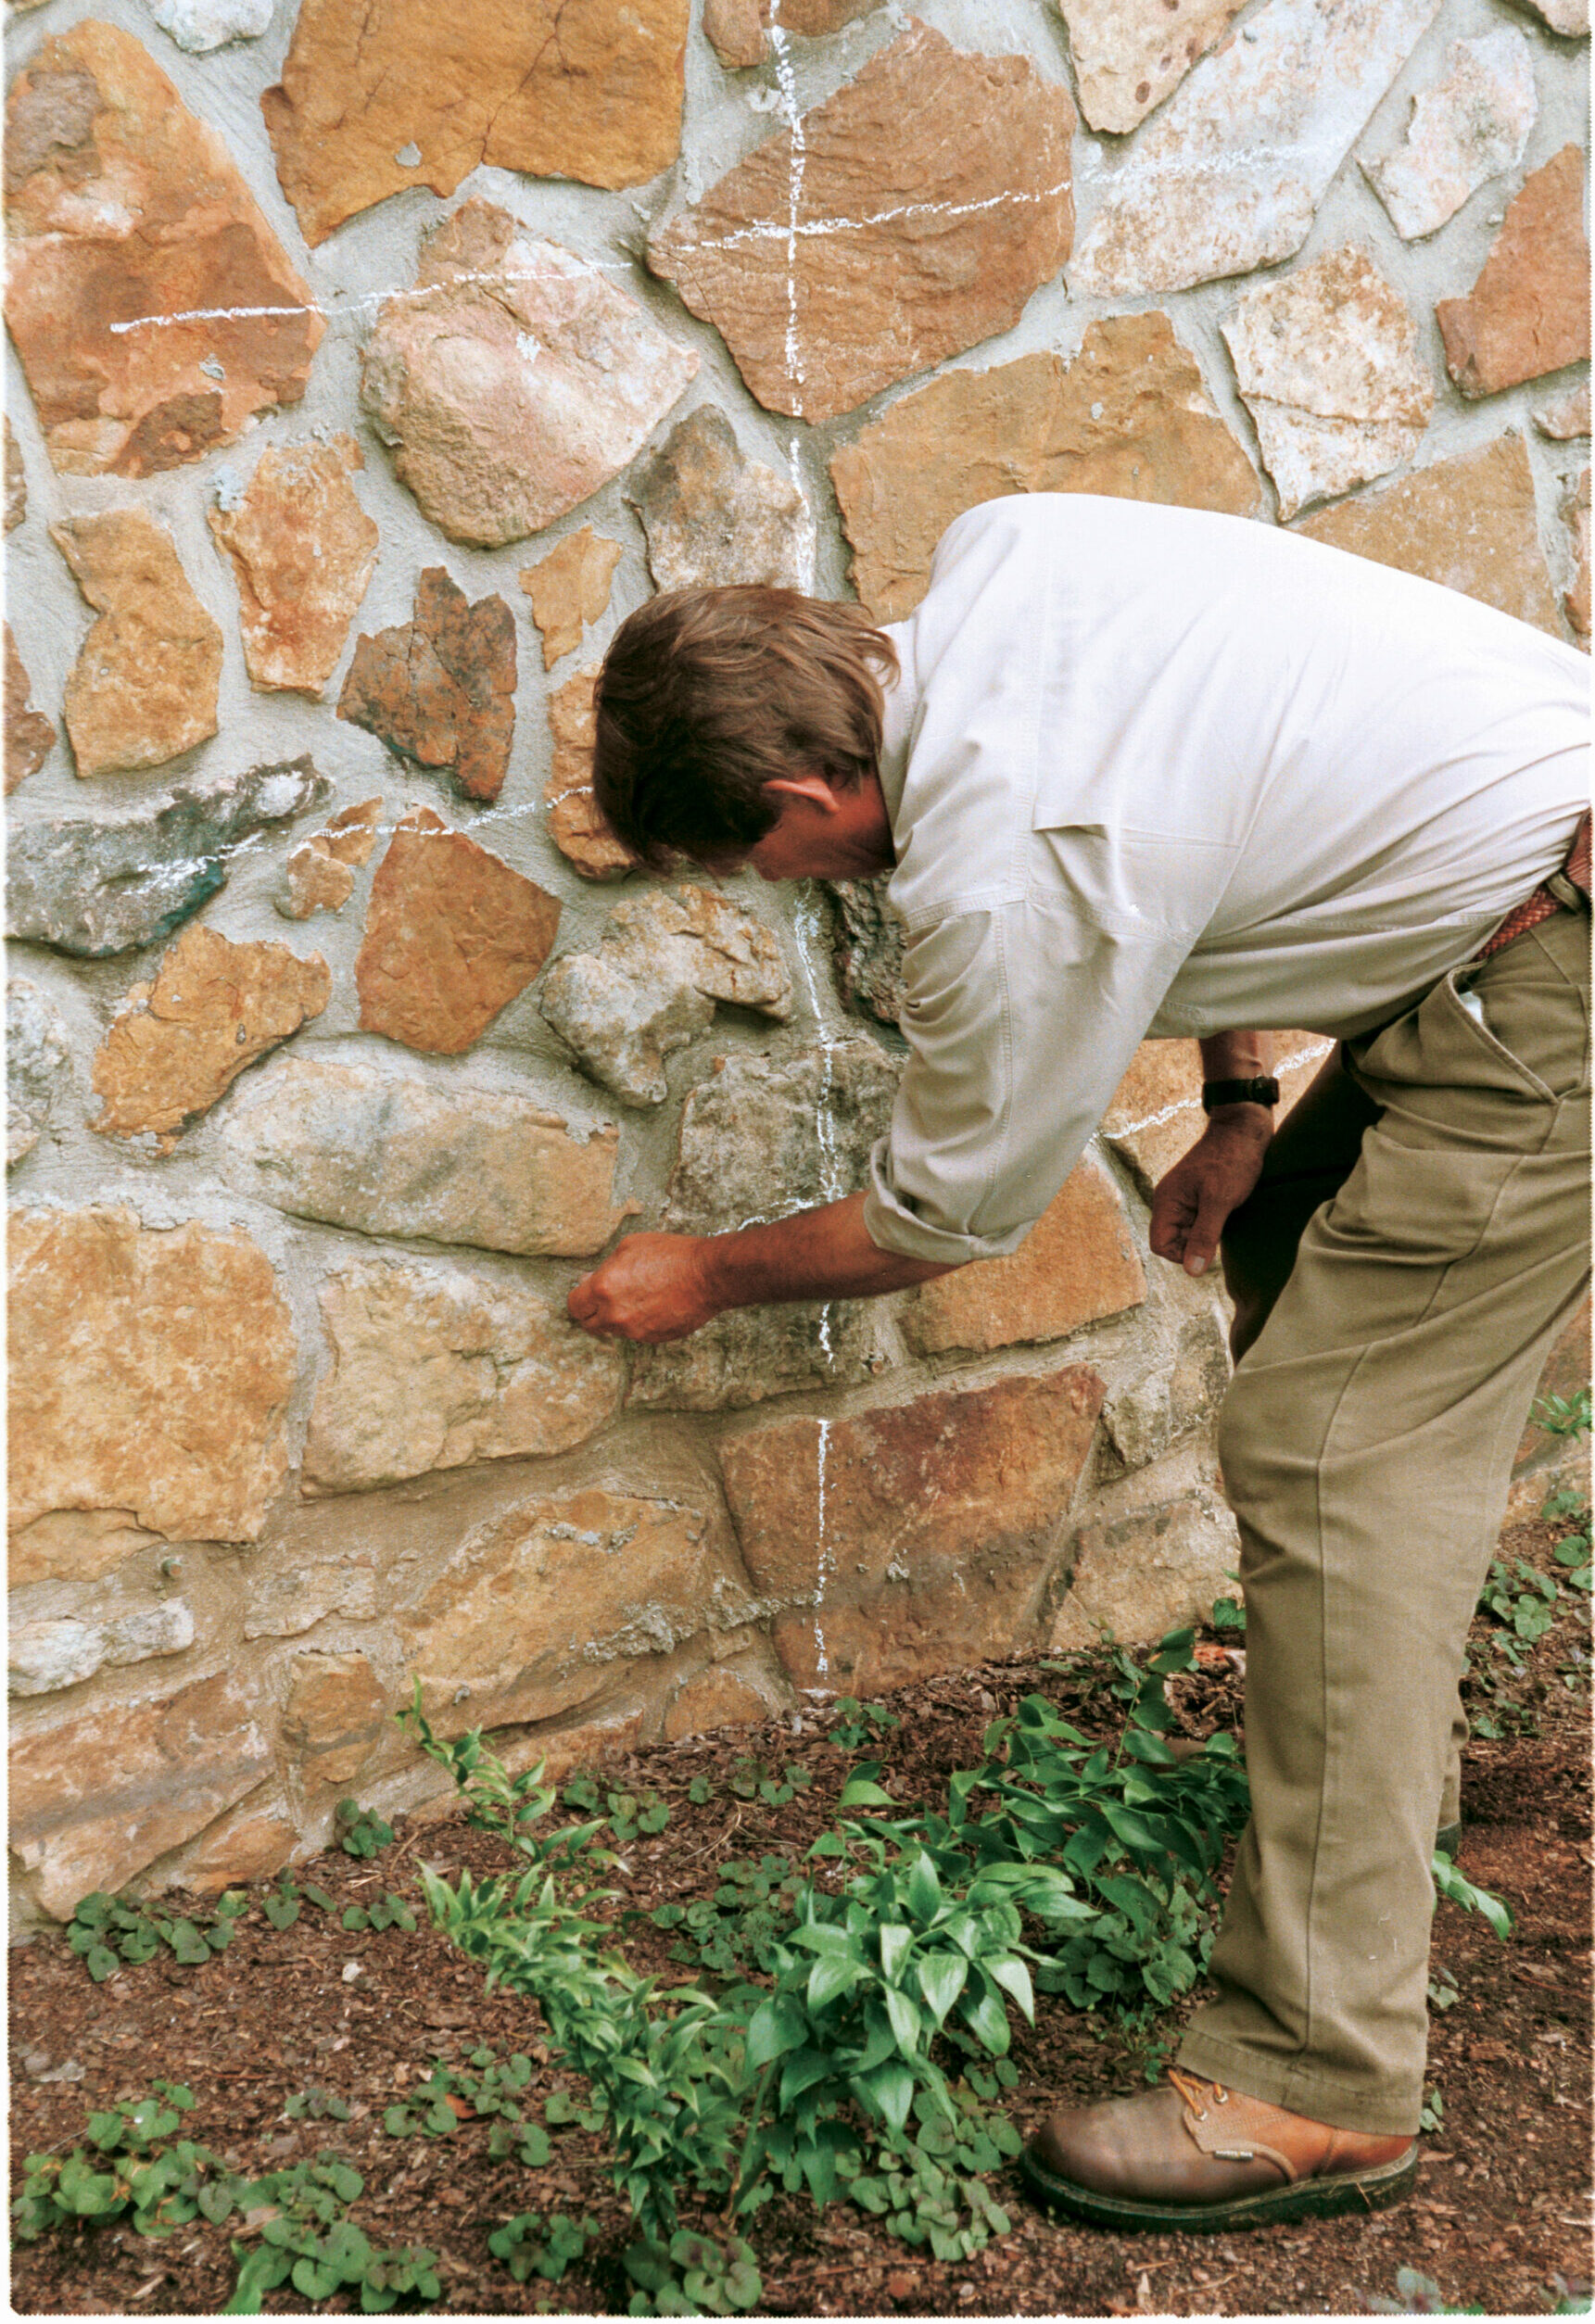 1. Trace an outline of the espalier design with chalk to use as a guide.